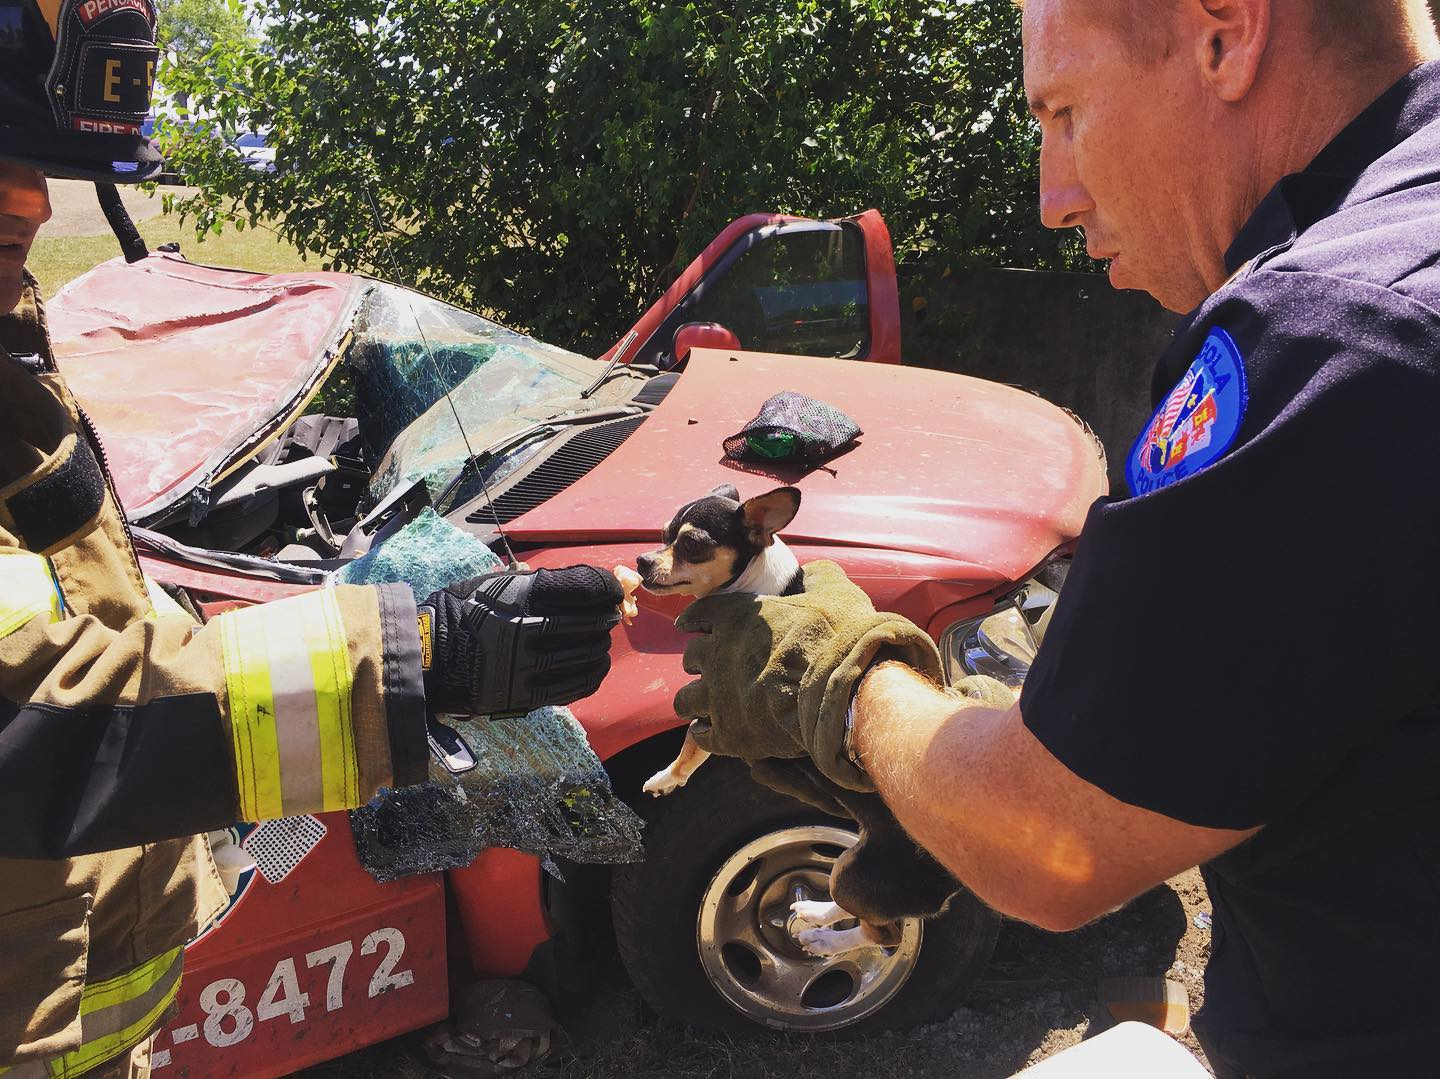 Terrified dog rescued from car crash in Pensacola